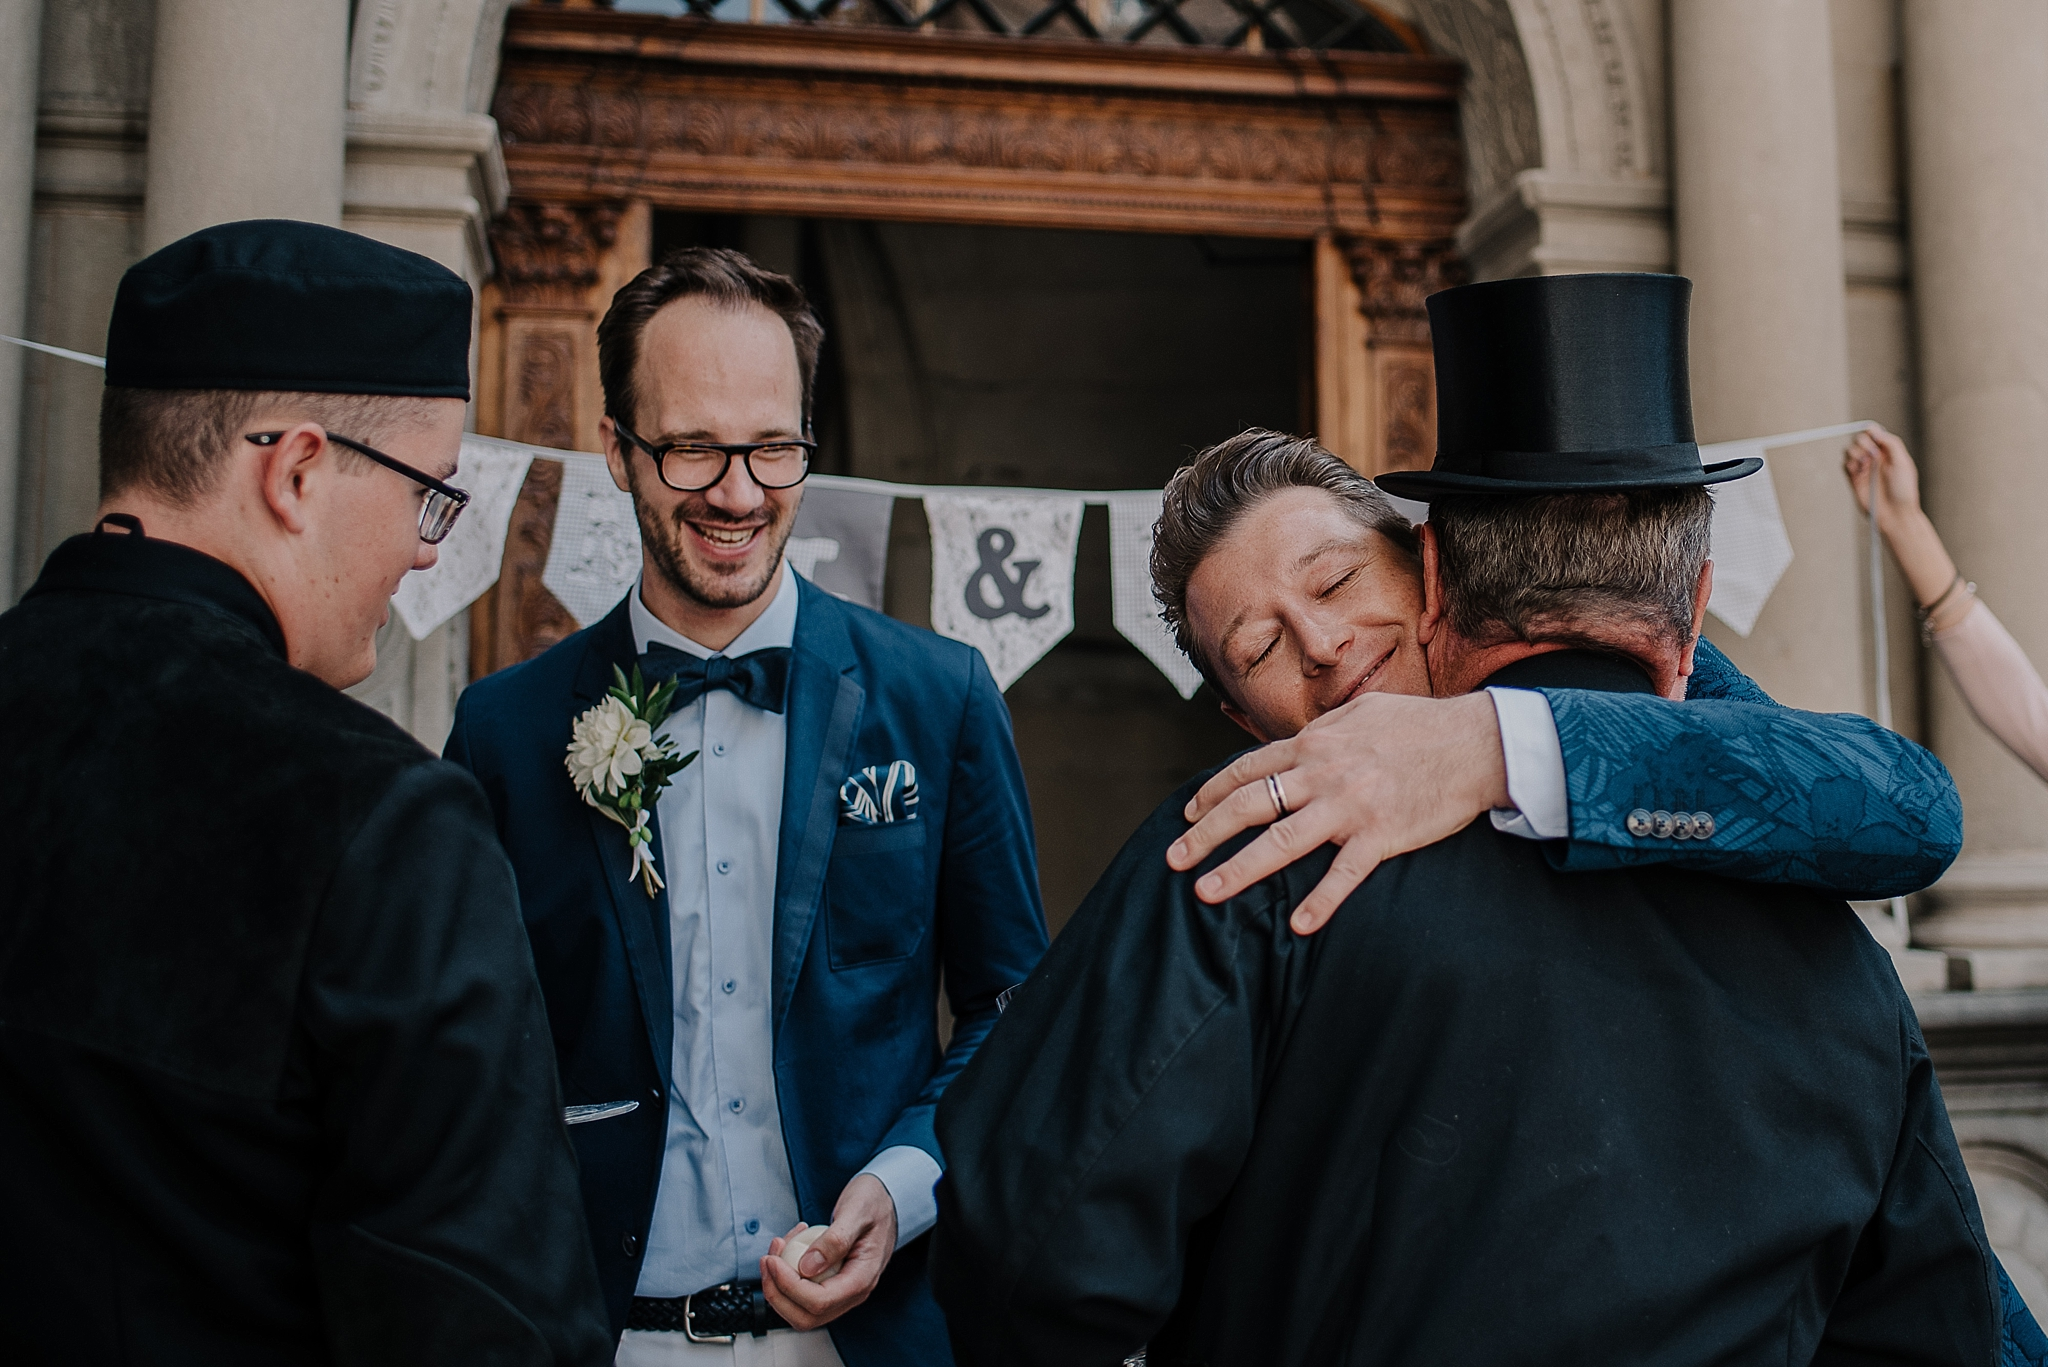 luzern lucerne standesamtliche hochzeit schweiz switzerland standesamt see civil wedding gay homosexual lgbt queer photographer hochzeitsfotograf münchen munich germany deutschland photos